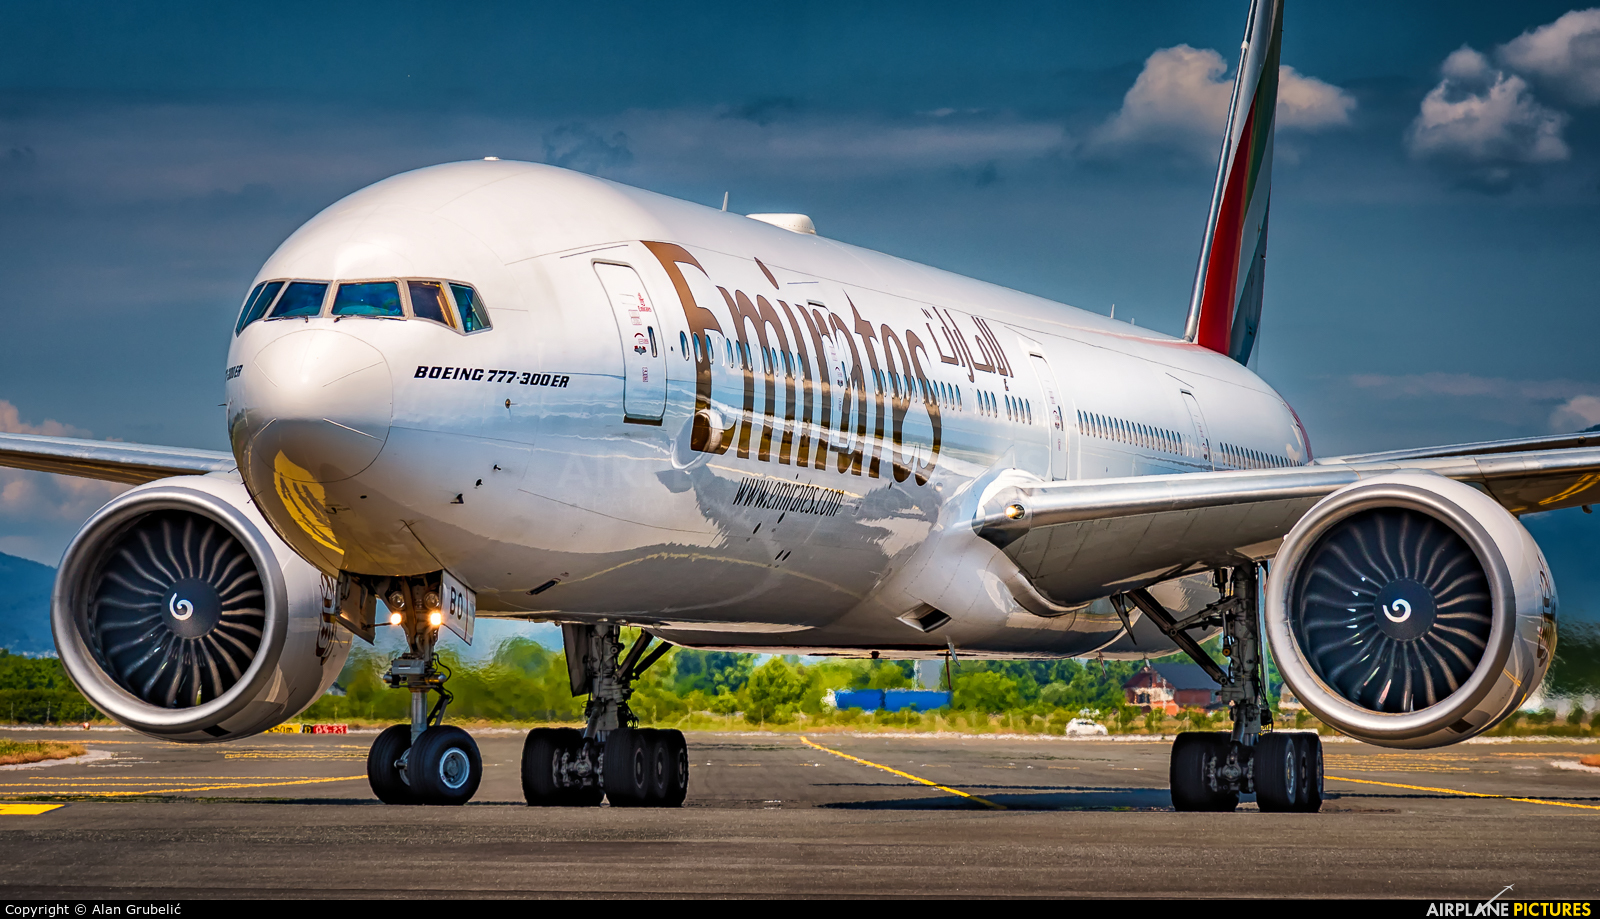 A6-EBO - Emirates Airlines Boeing 777-300ER at Zagreb | Photo ID